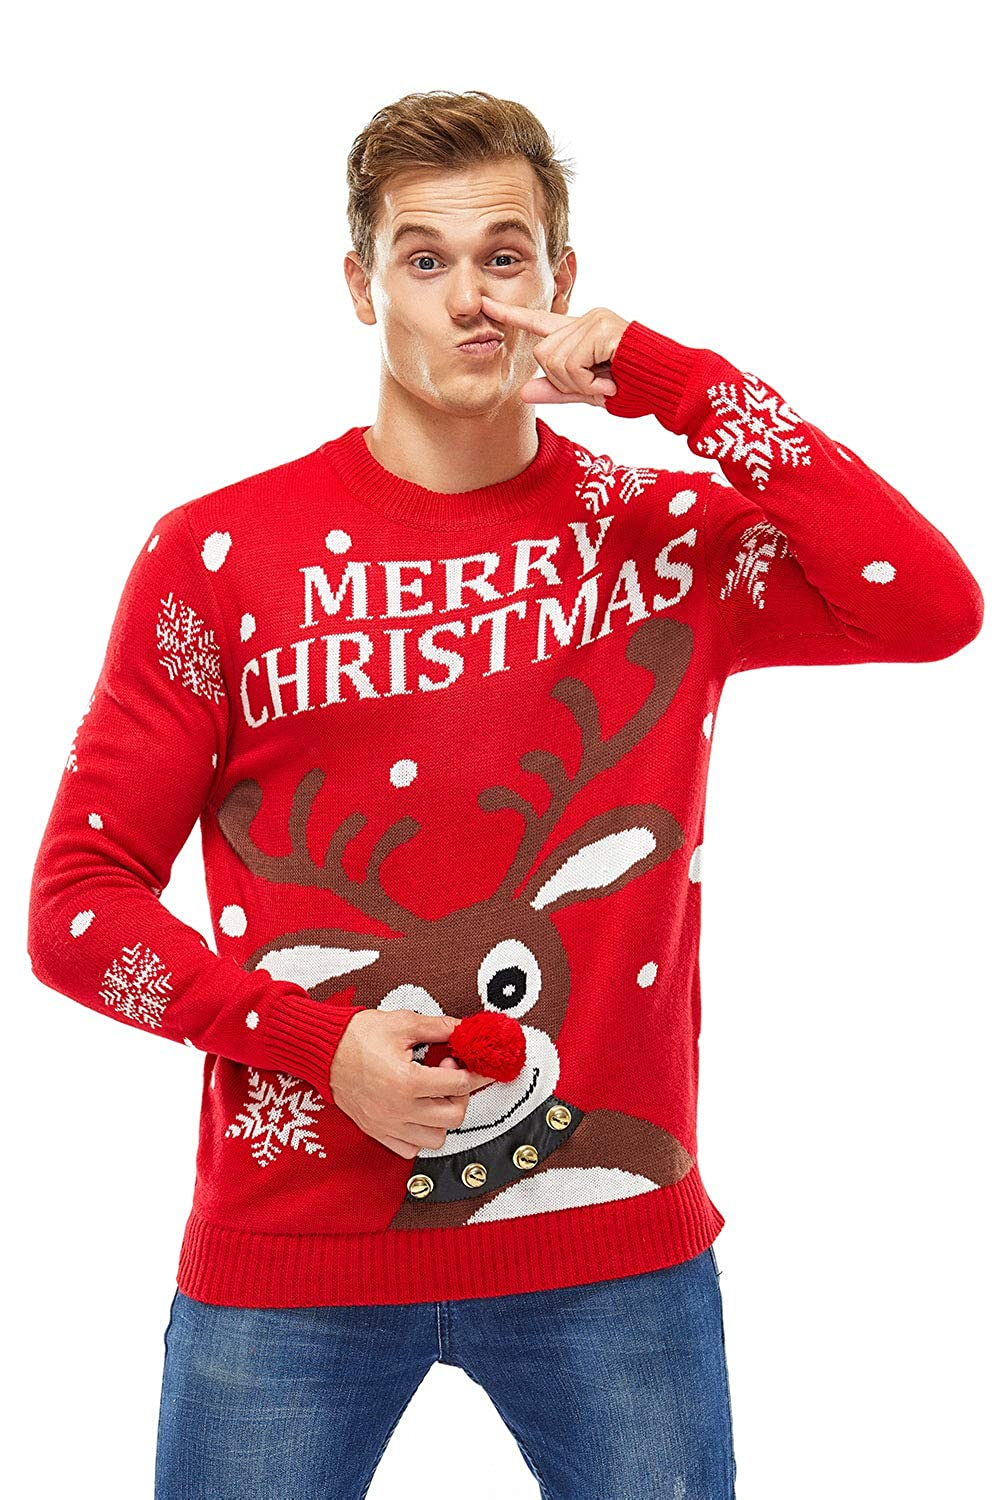 Unisex Womens Christmas Sweater Ugly Pullover Funny Reindeer Pom Pom Nose Xmas Red Nose Romp